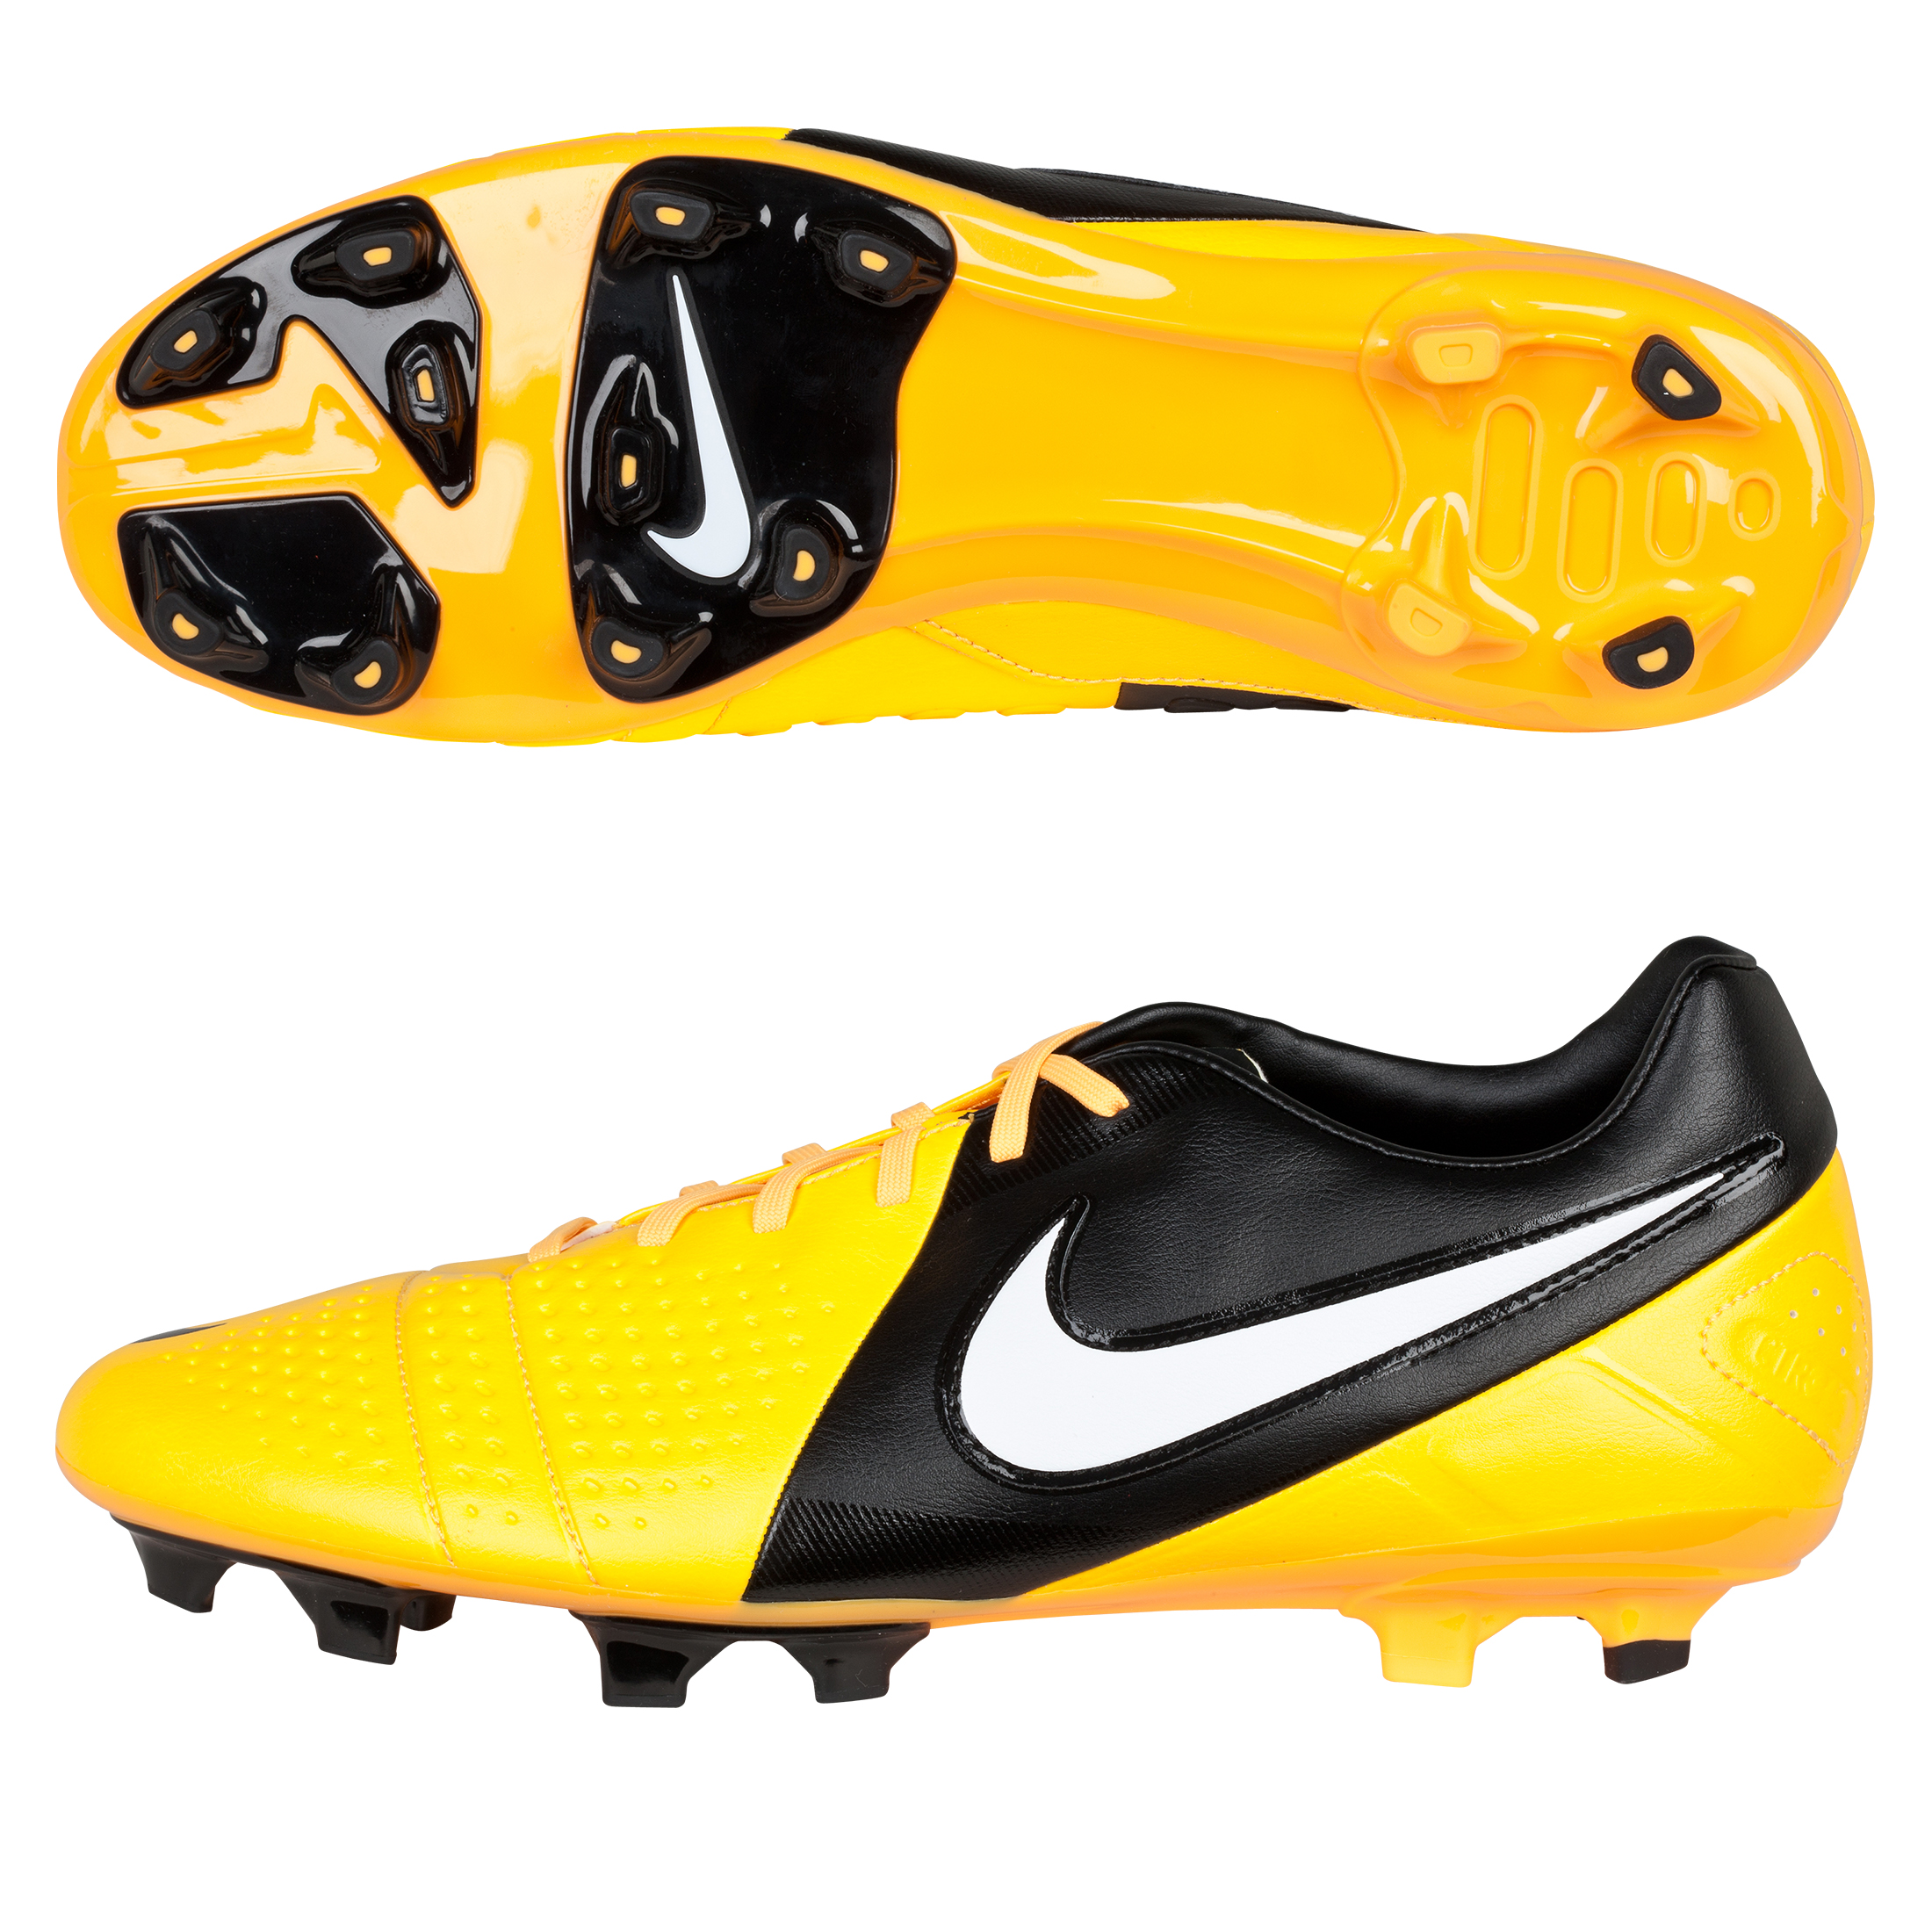 Nike CTR360 Libretto III Firm Ground Football Boots - Citrus/White/Black